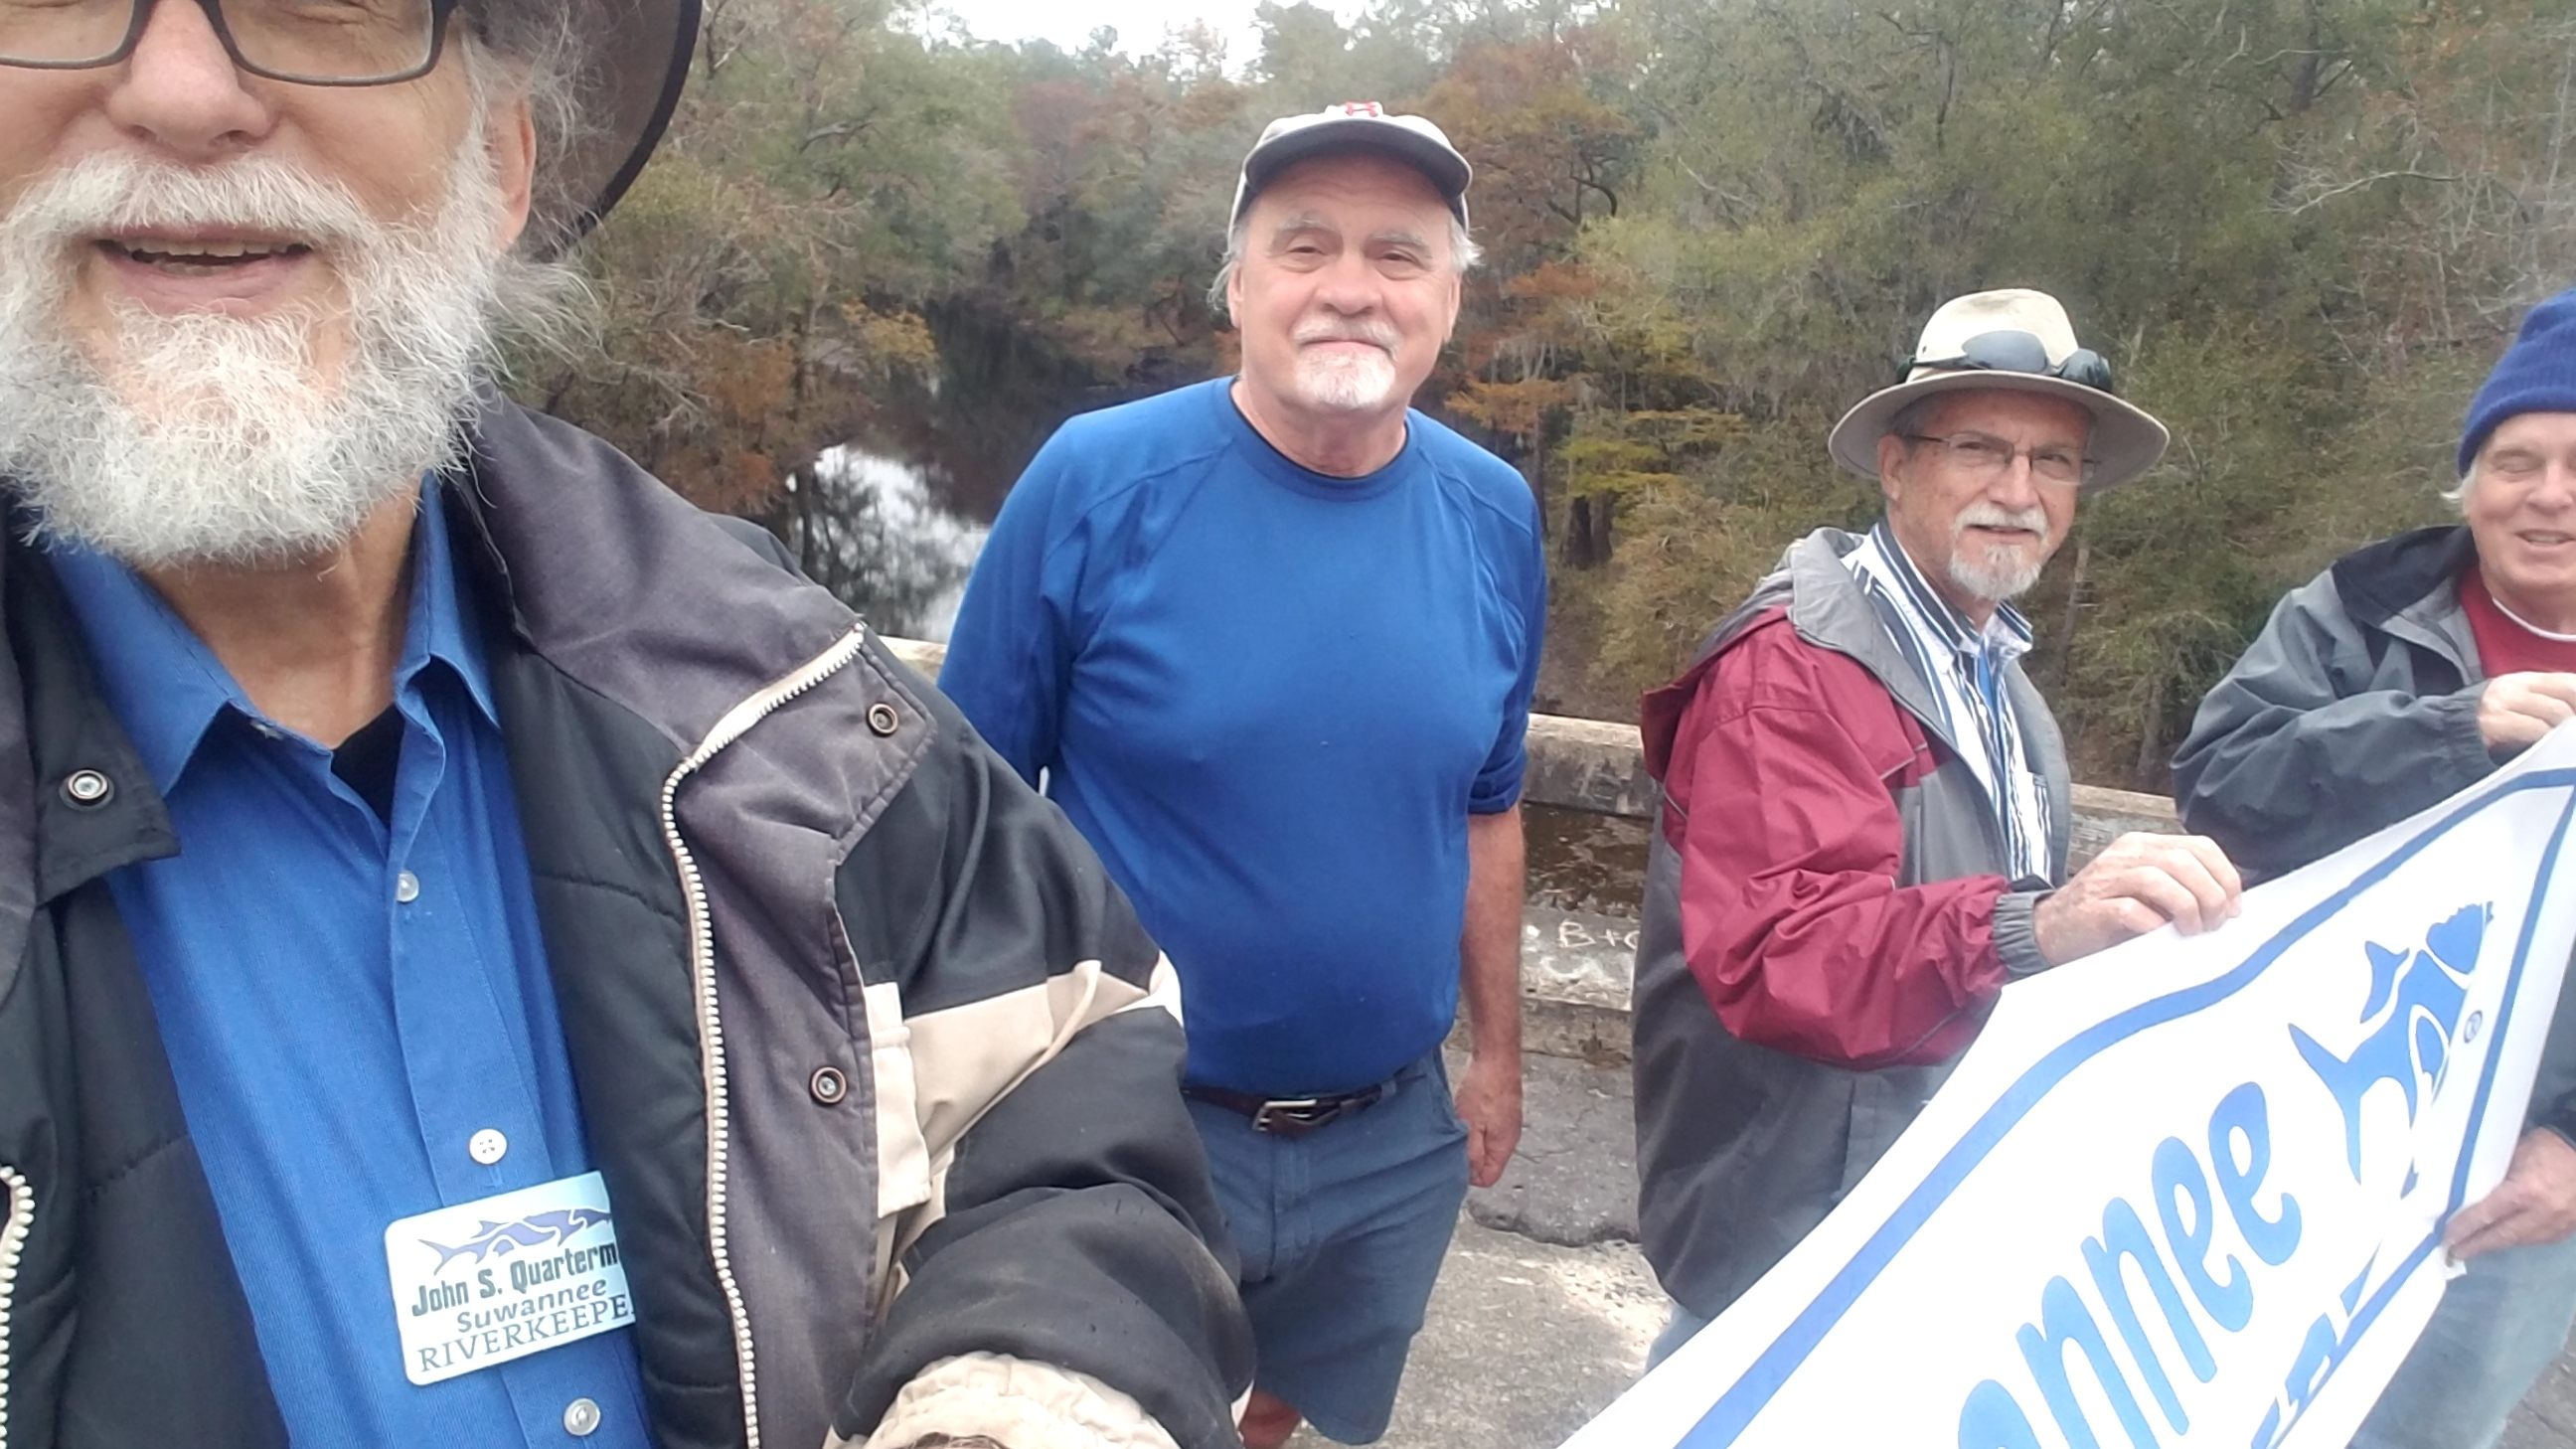 2592x1458 Banner selfie, 13:36:10, 30.7900000, -83.4583333, On top, in Hike to Spook Bridge, by John S. Quarterman, for WWALS.net, 11 November 2017